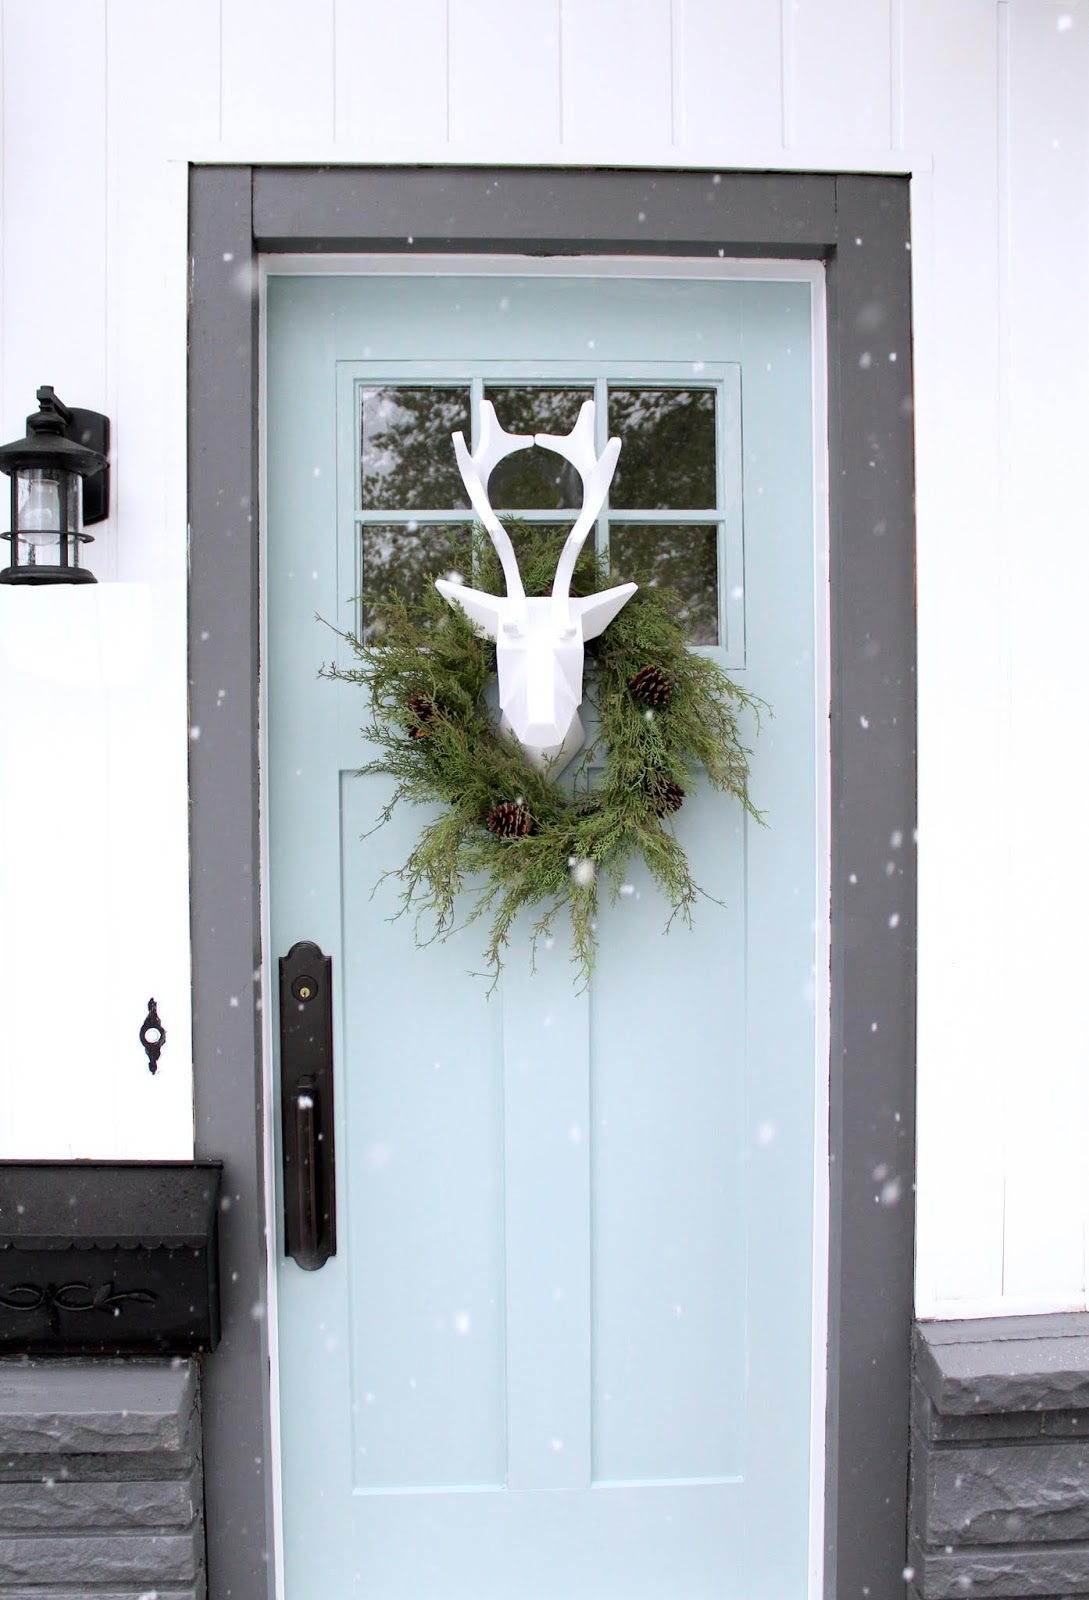 Unique-Christmas-front-door-decorations-harlow-and-thistle-1